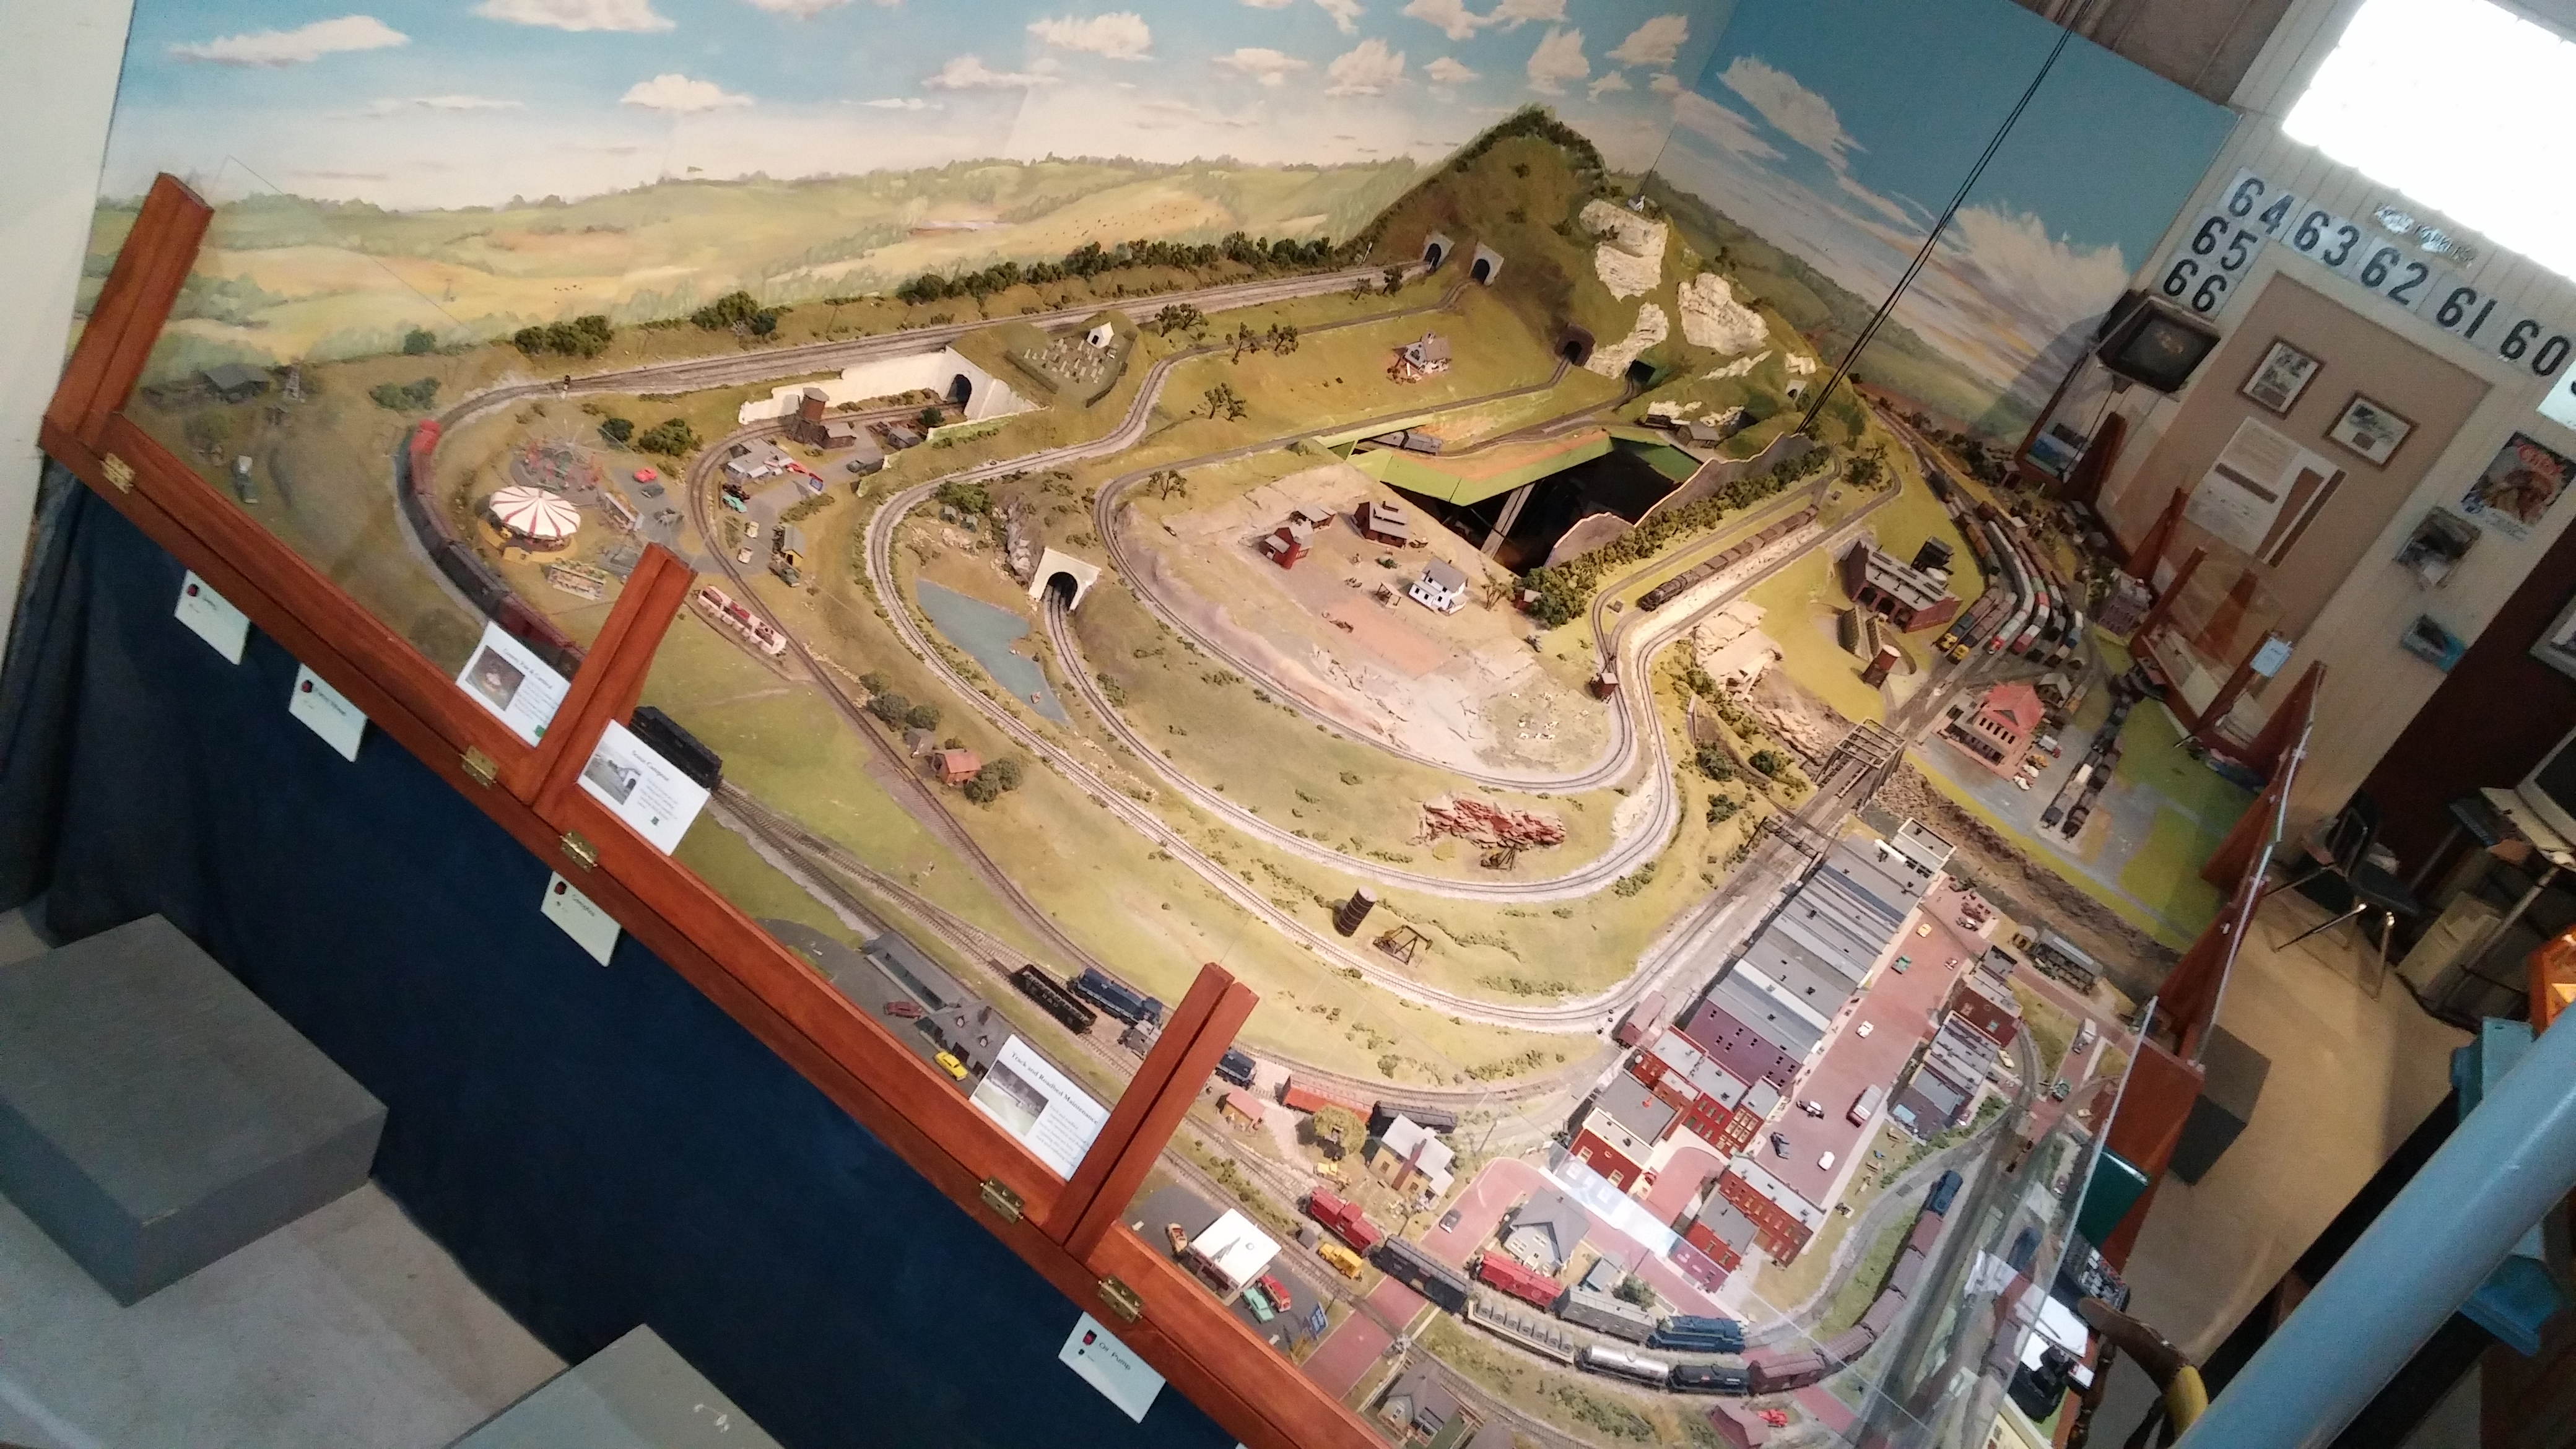 The HO-Scale Model Railroad exhibit was started during the 1960s. Many of the handcrafted structures, including the miniature depot and the buildings on Main Street, replicate structures in Franklin County.